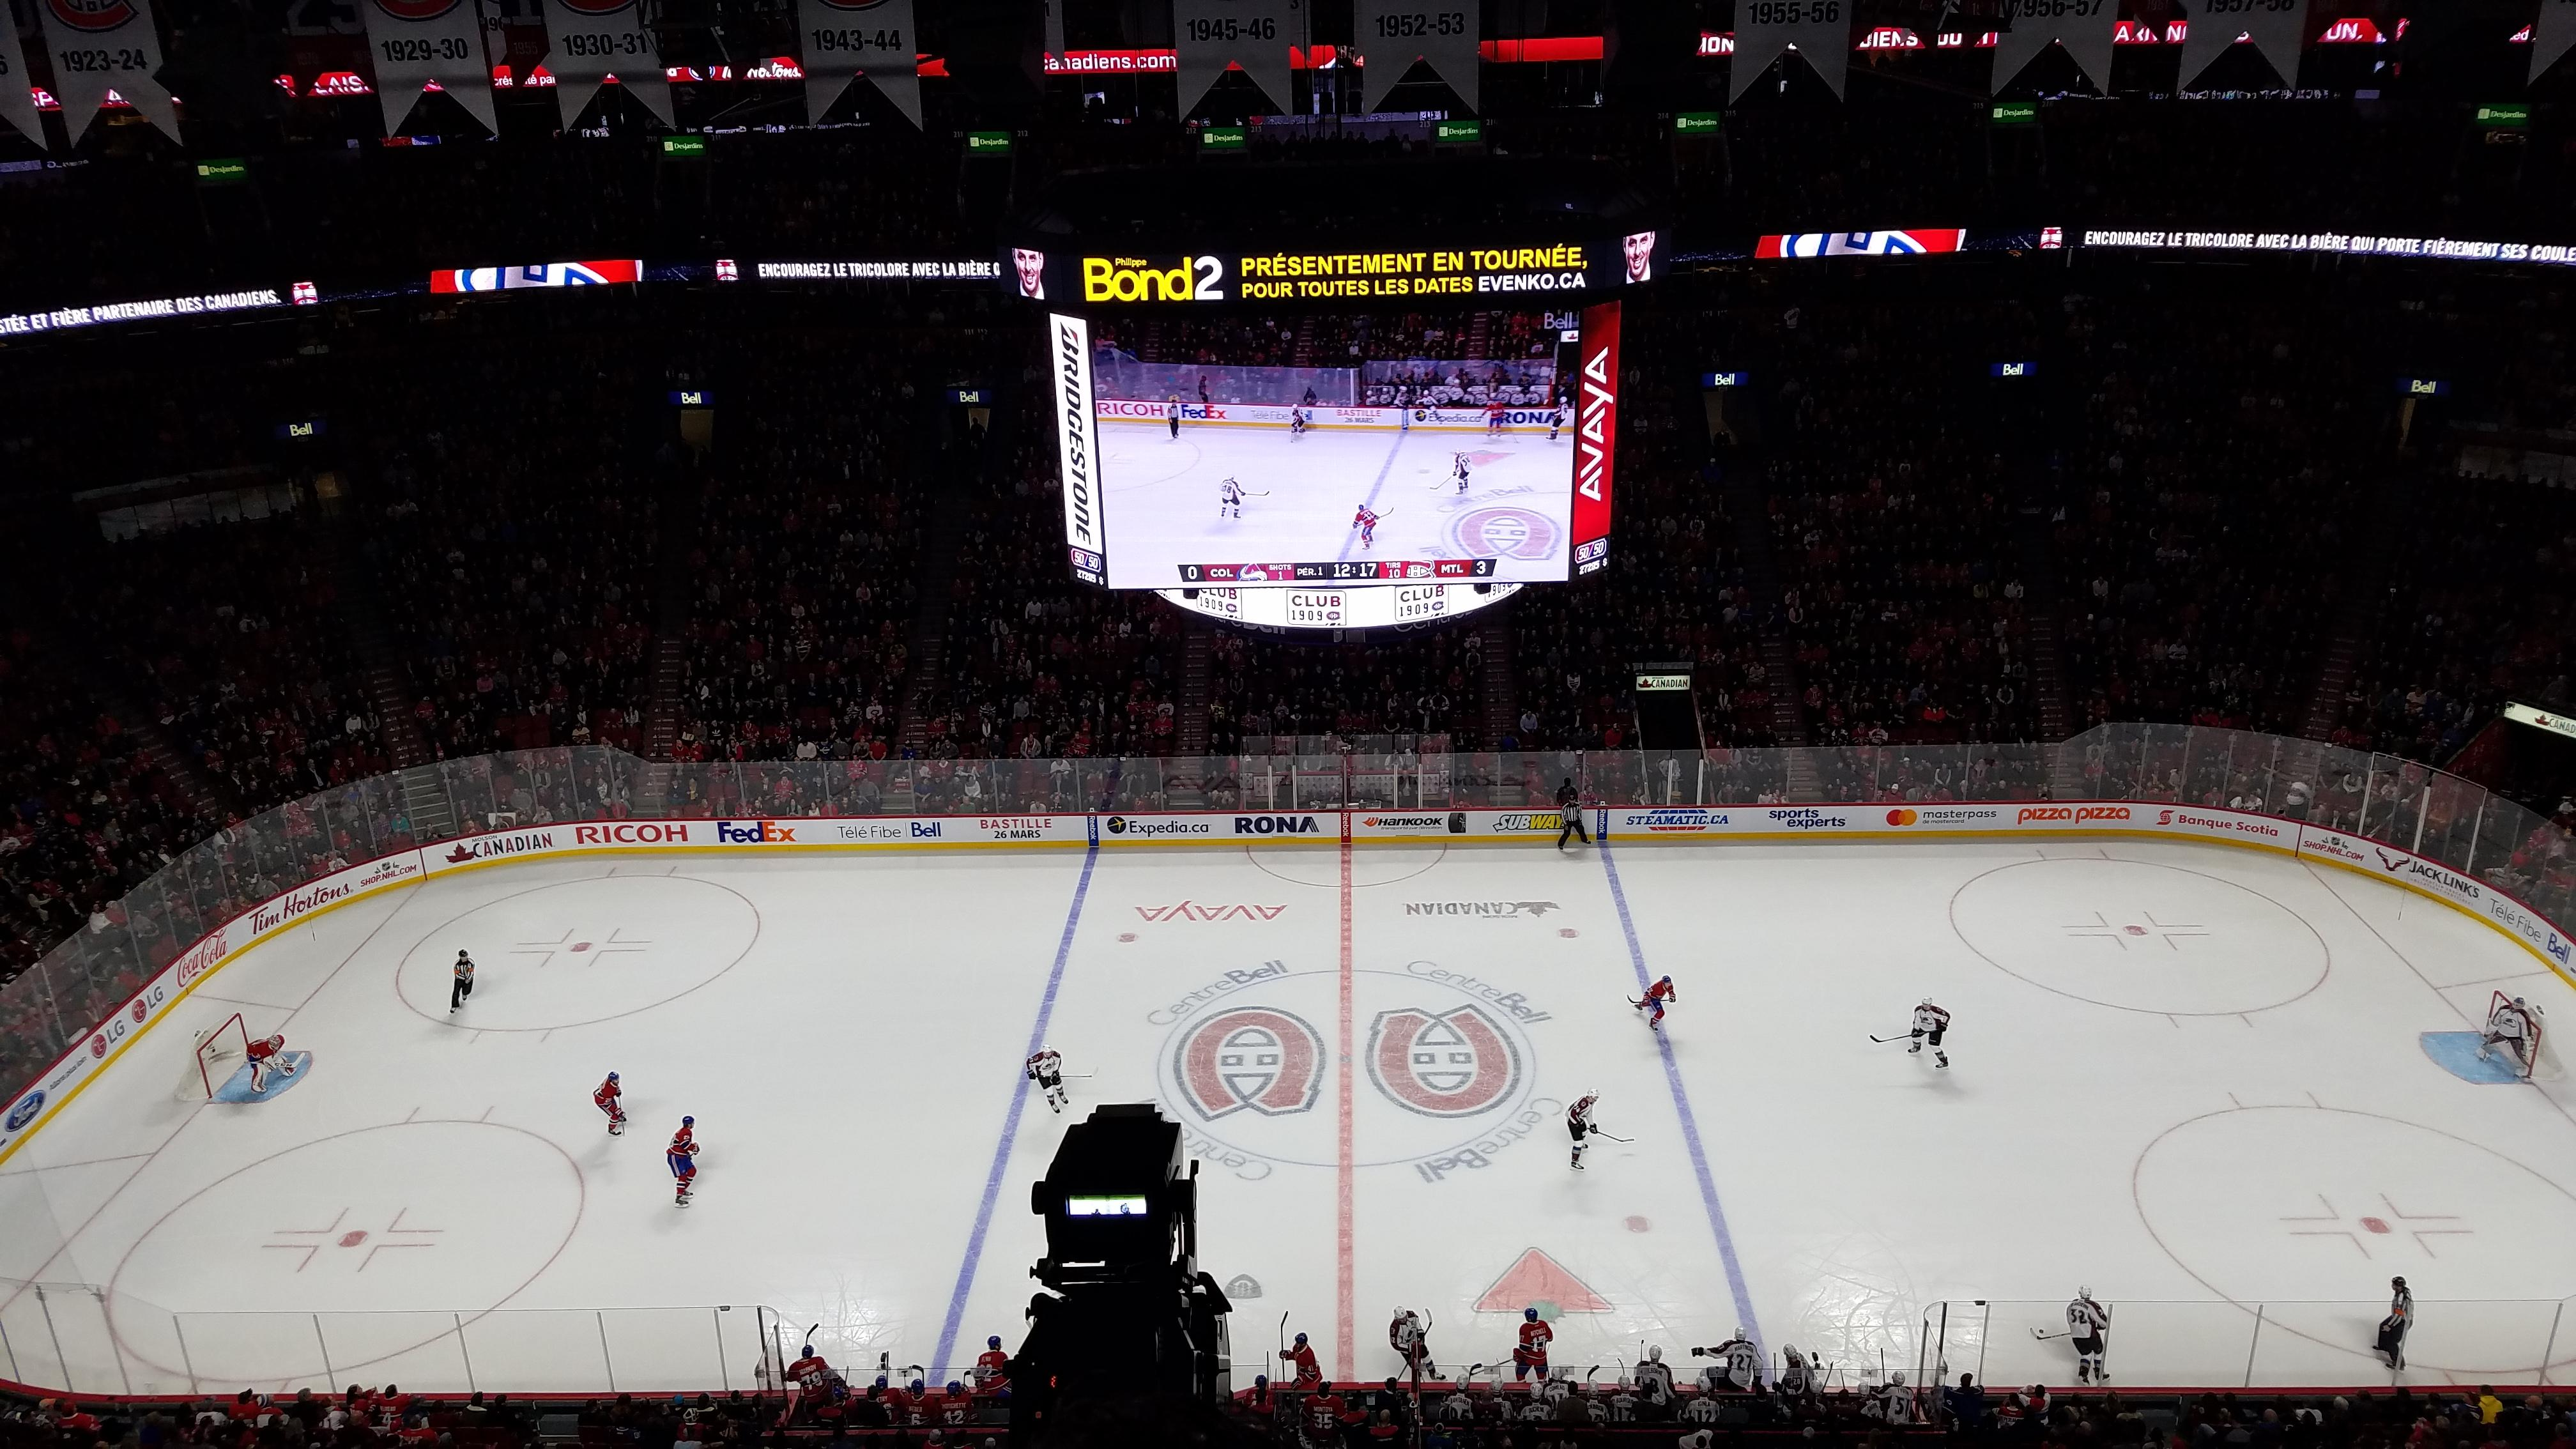 Centre Bell Section 301 Row EE Seat 5